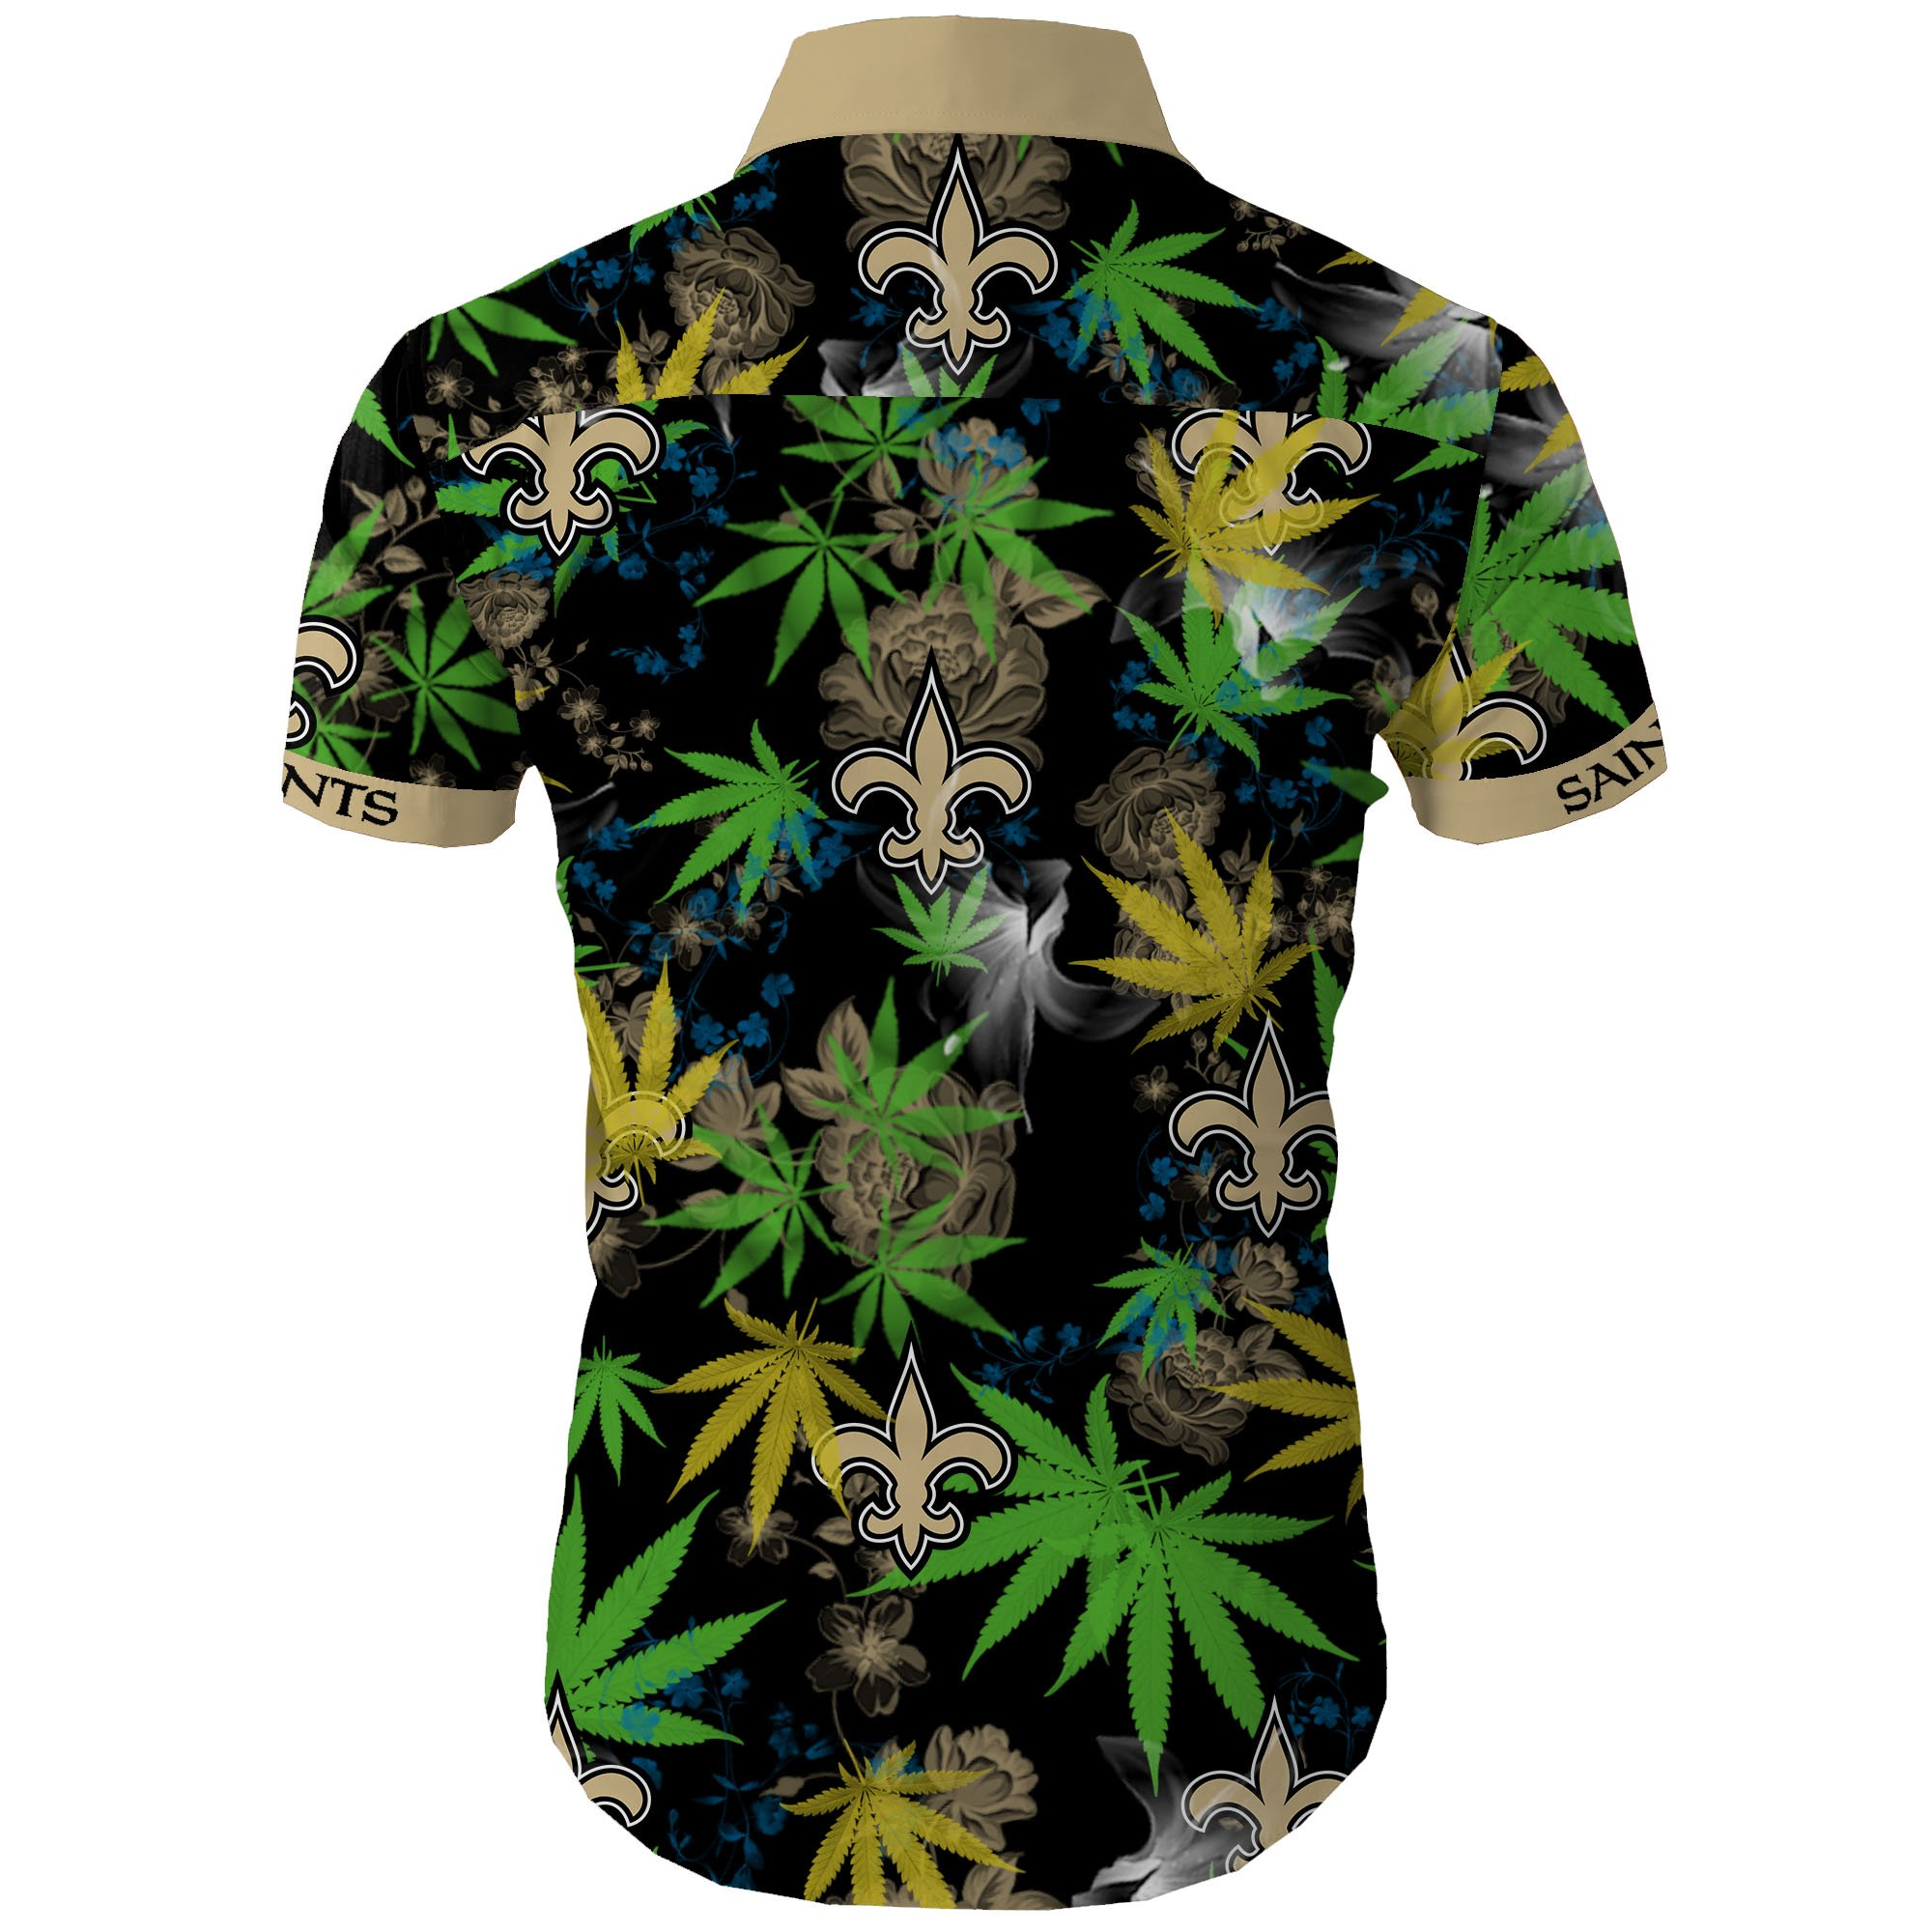 New orleans saints cannabis all over printed hawaiian shirt 4